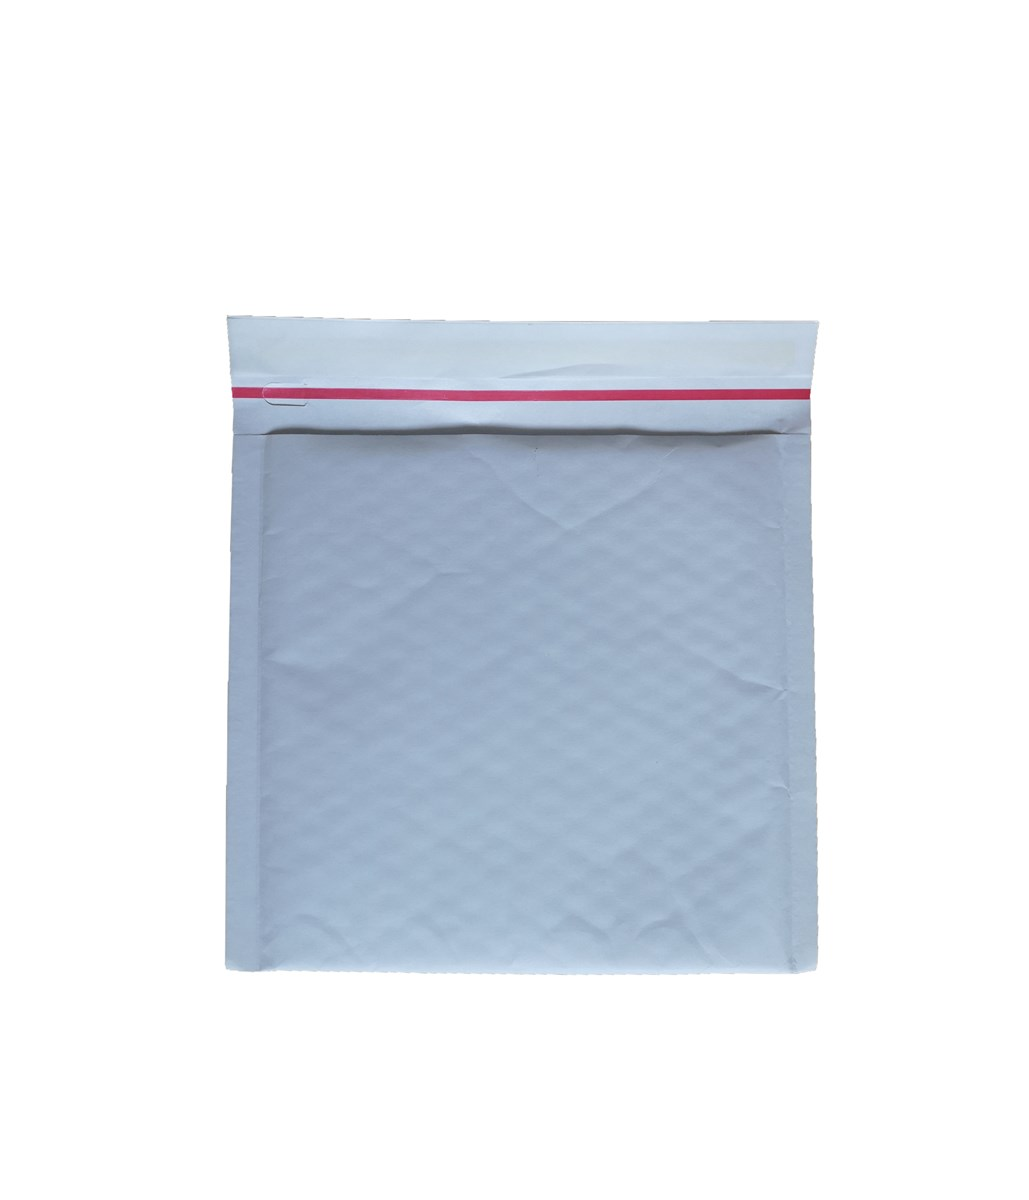 Factory Direct Custom Kraft Paper Bubble Padded Mailer with Logo Printing Available Jiffy Bag Express Envelope CW